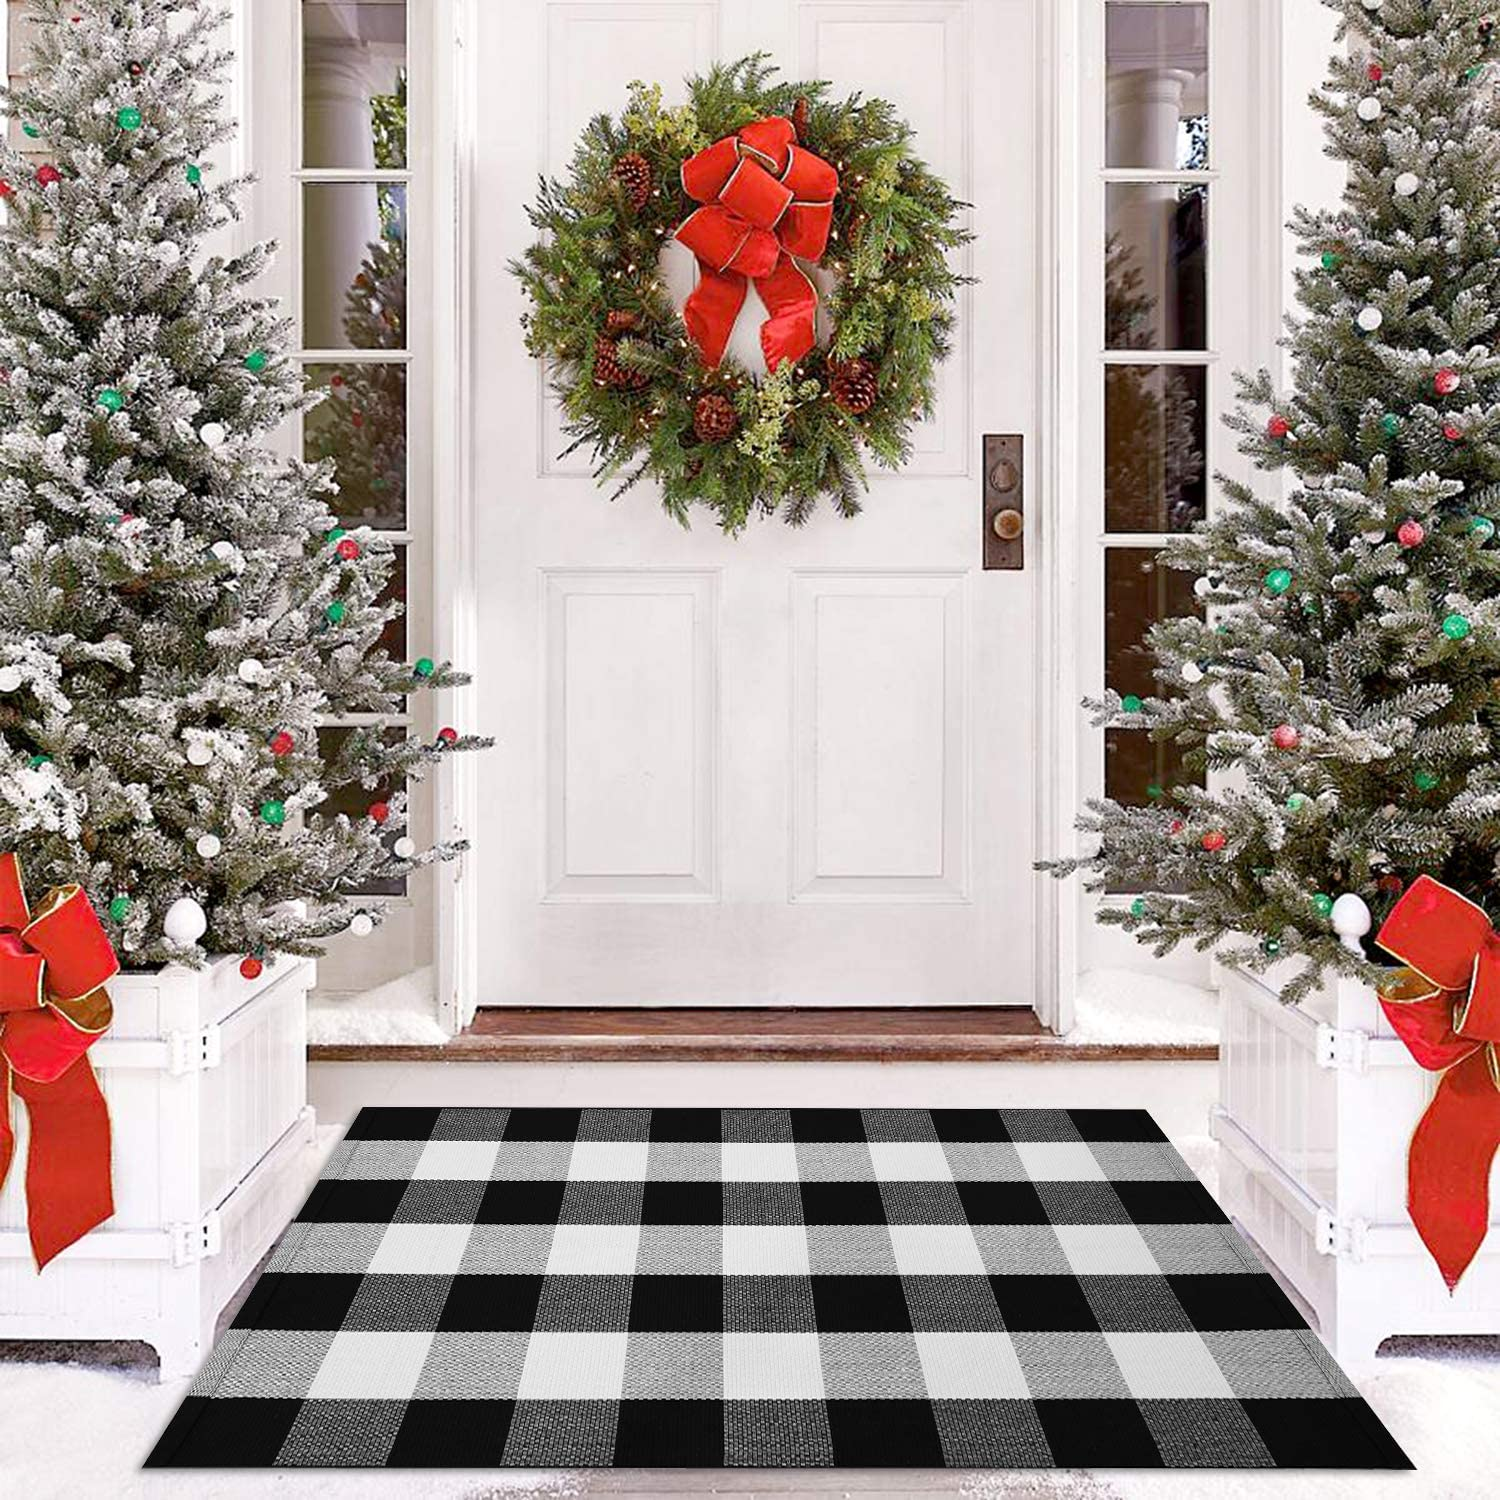 Cotton Buffalo Check Rug Outdoor Doormat 27.5 x 43 Inches Washable Woven Front Porch Decor Outdoor Indoor Welcome Mats for Front Door/Kitchen/Farmhouse/Entryway/Home Entrance Black Rug